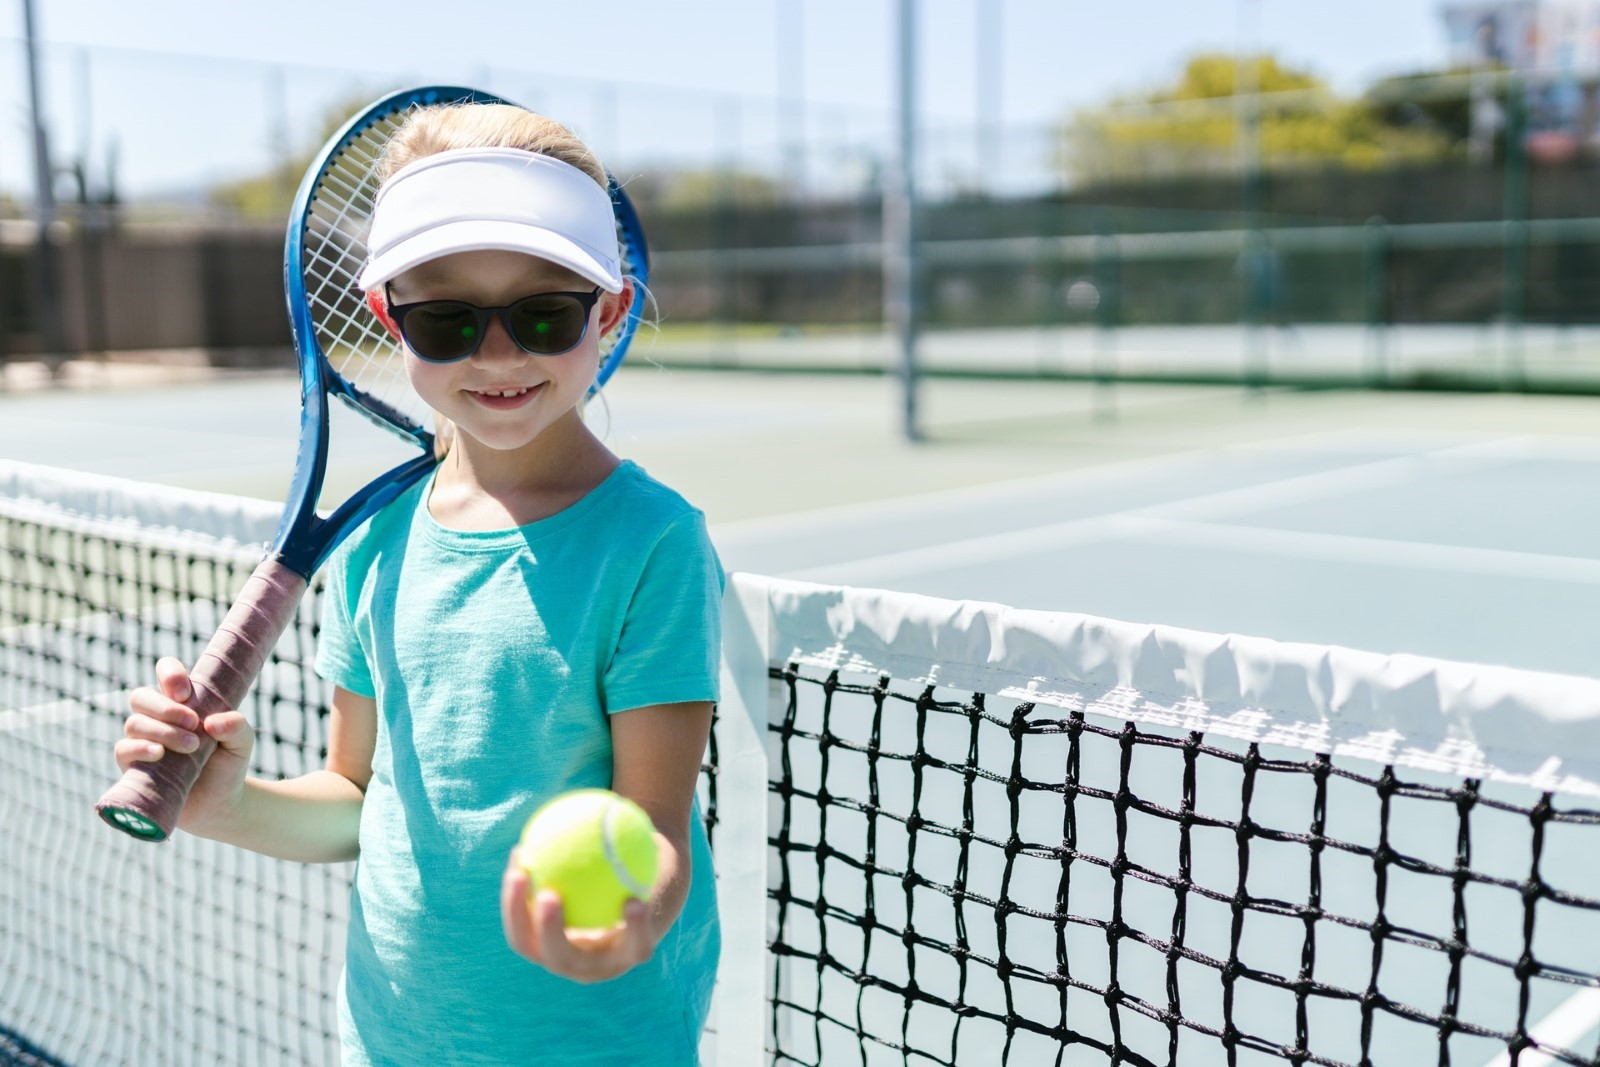 A child holding a tennis racket  Description automatically generated with medium confidence